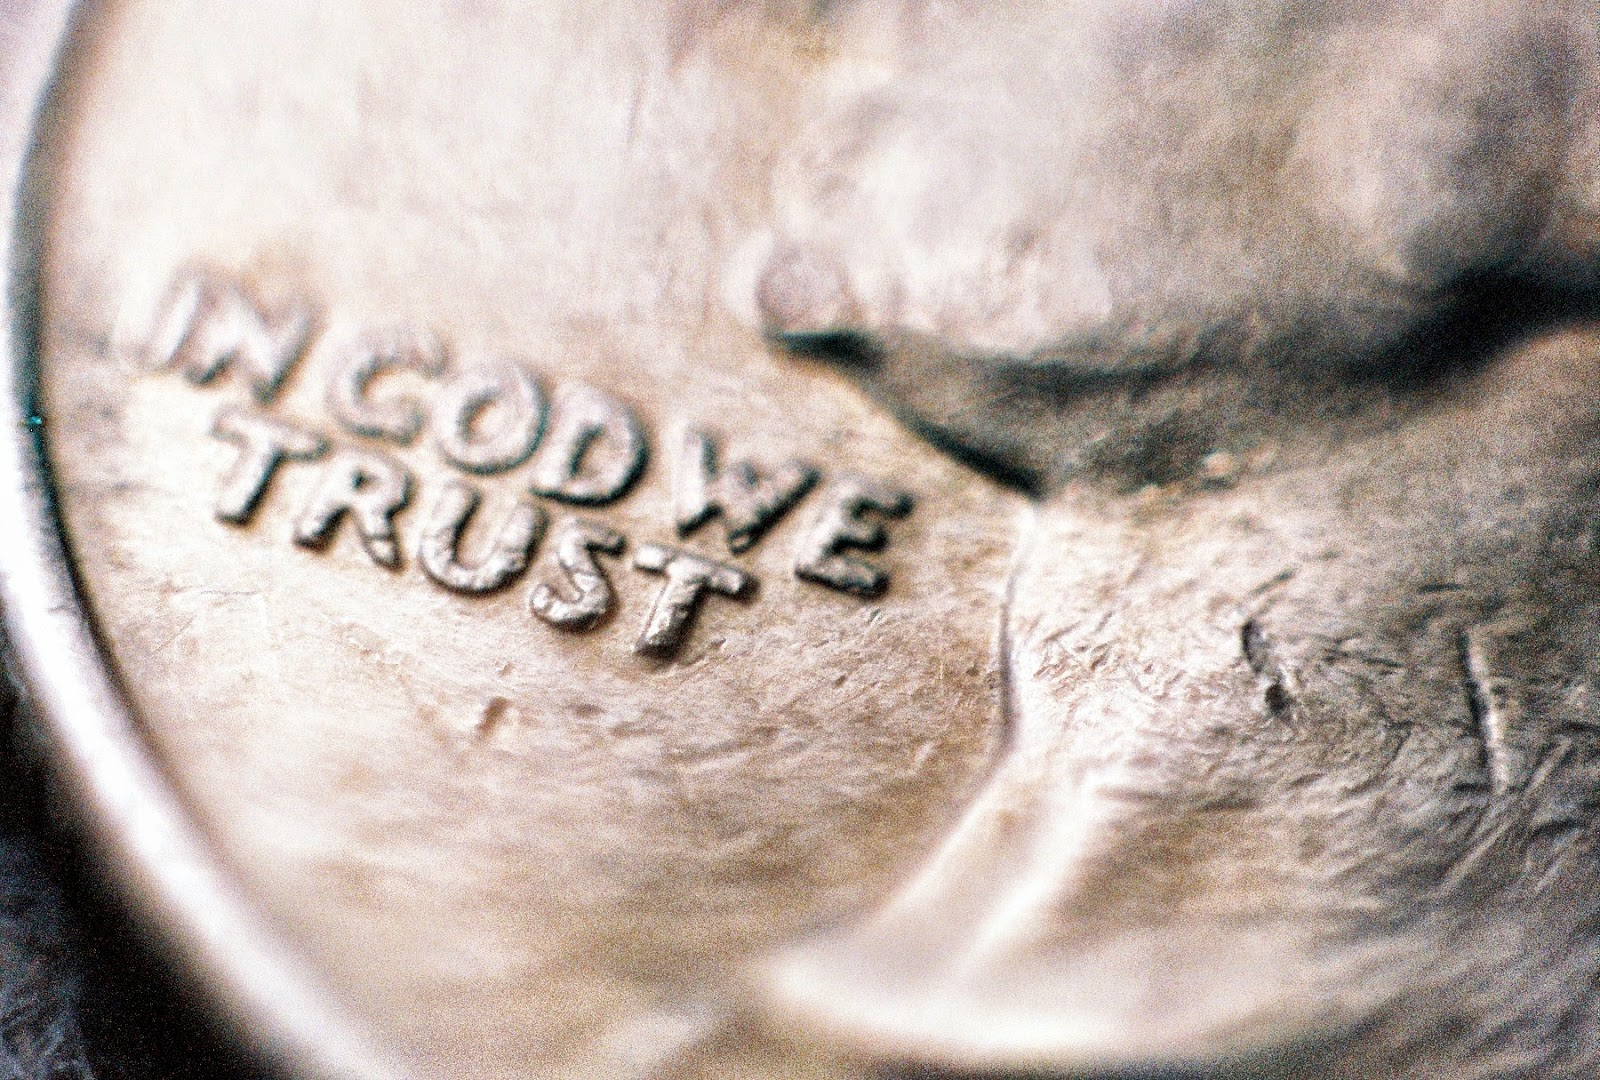 """In god we trust"" by Aaron van Dorn Partial photo of a quarter, emphasising the phrase ""In god we trust""."